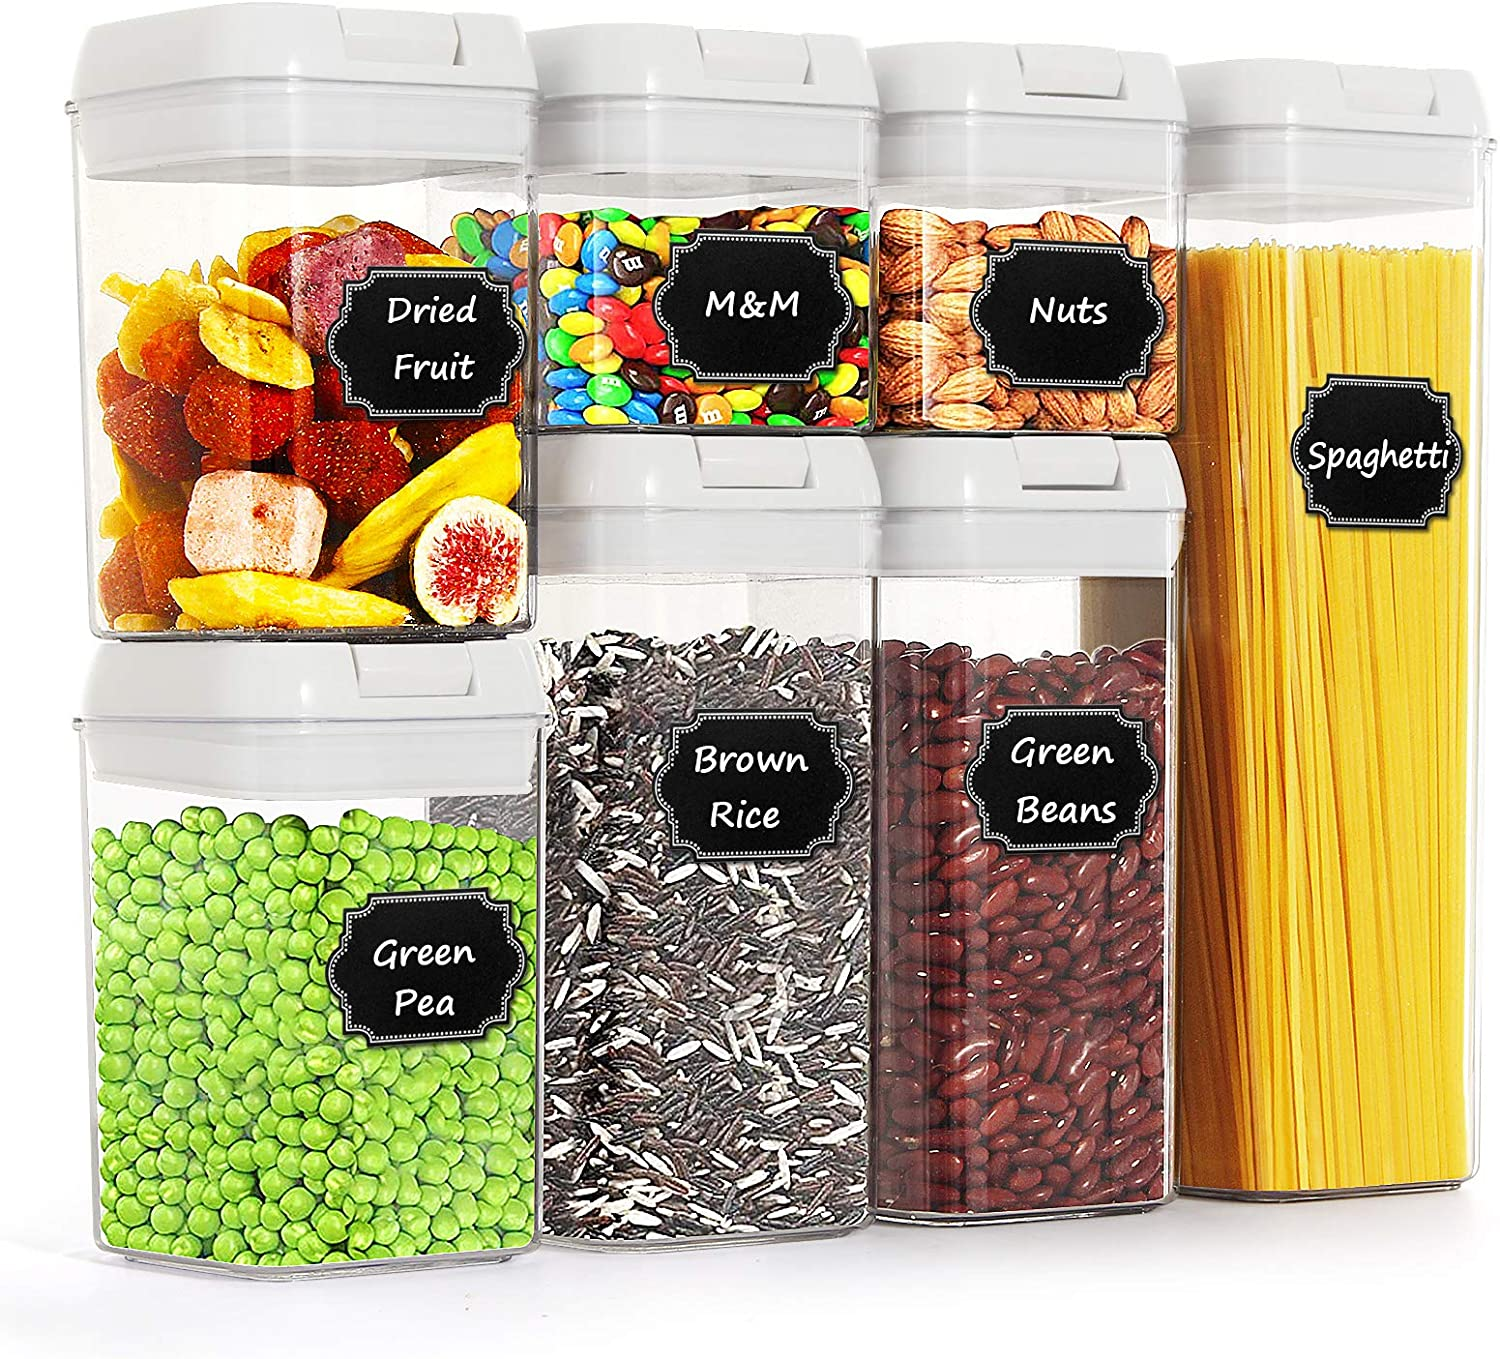 Airtight Food Storage Containers by Paincco, BPA Free White Cereal Storage Containers Set of 7 for Kitchen Pantry Organization, with 20 Labels & 1 Marker